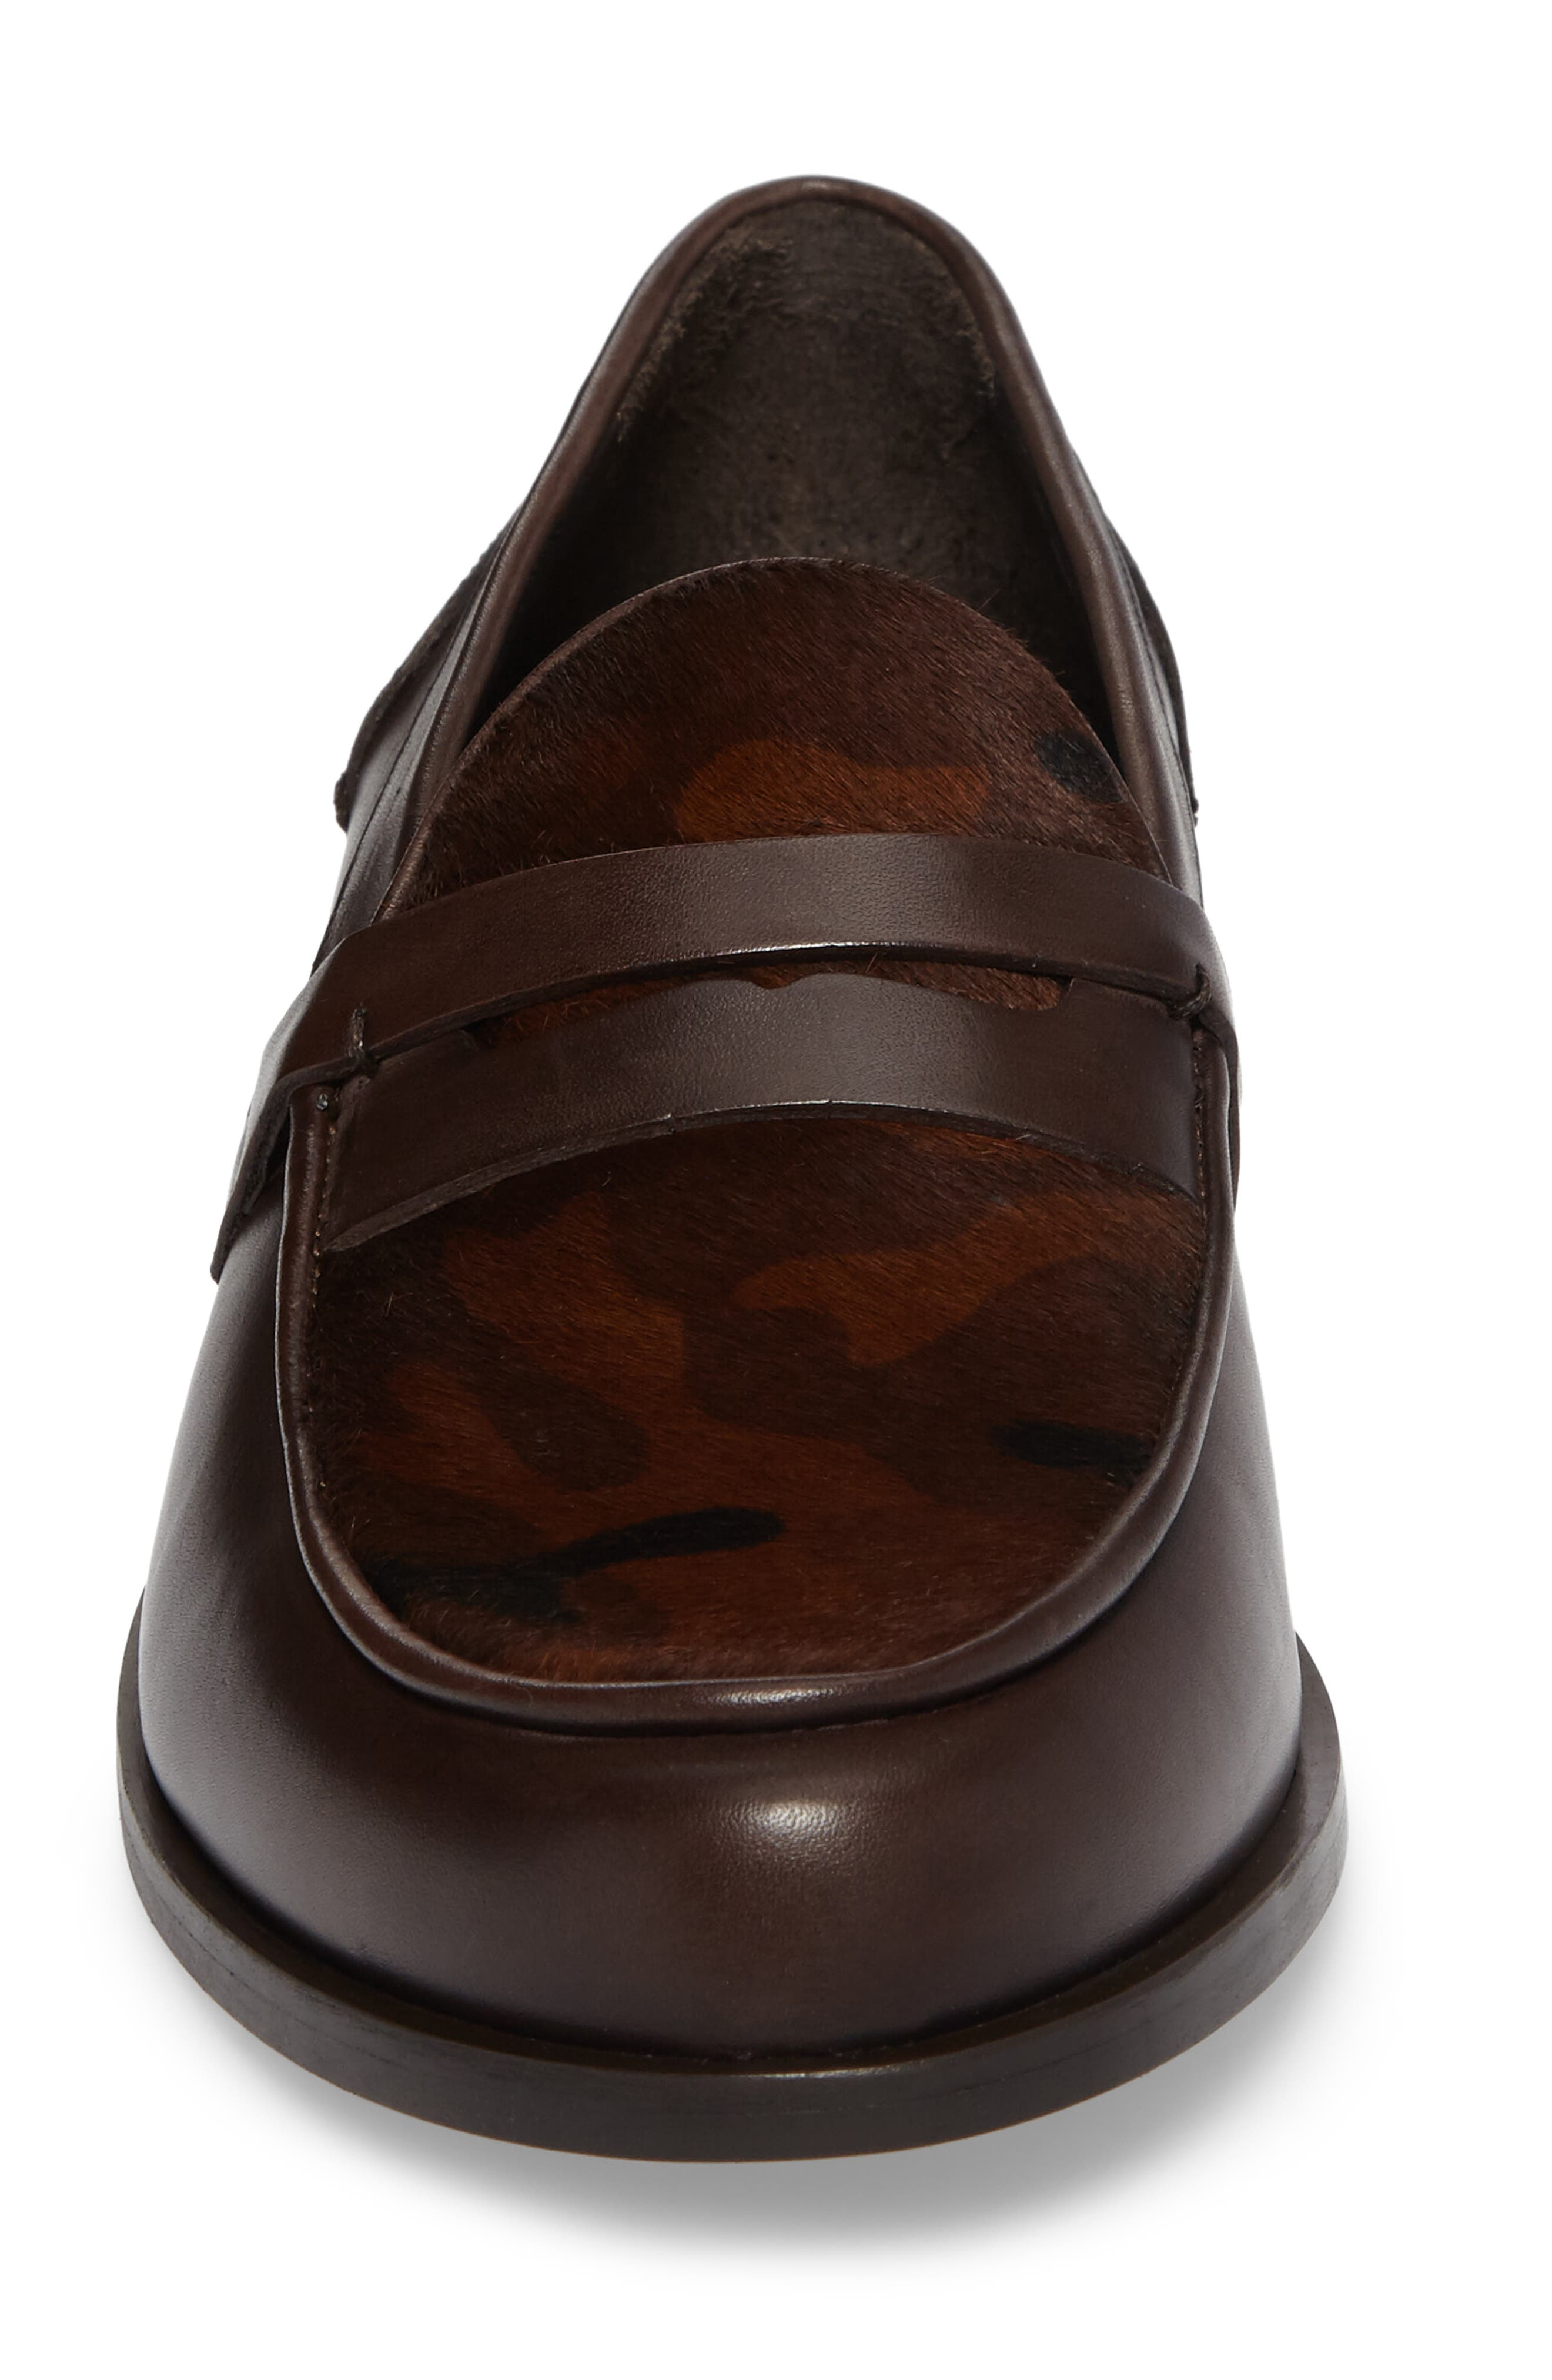 Sawyer Penny Loafer,                             Alternate thumbnail 8, color,